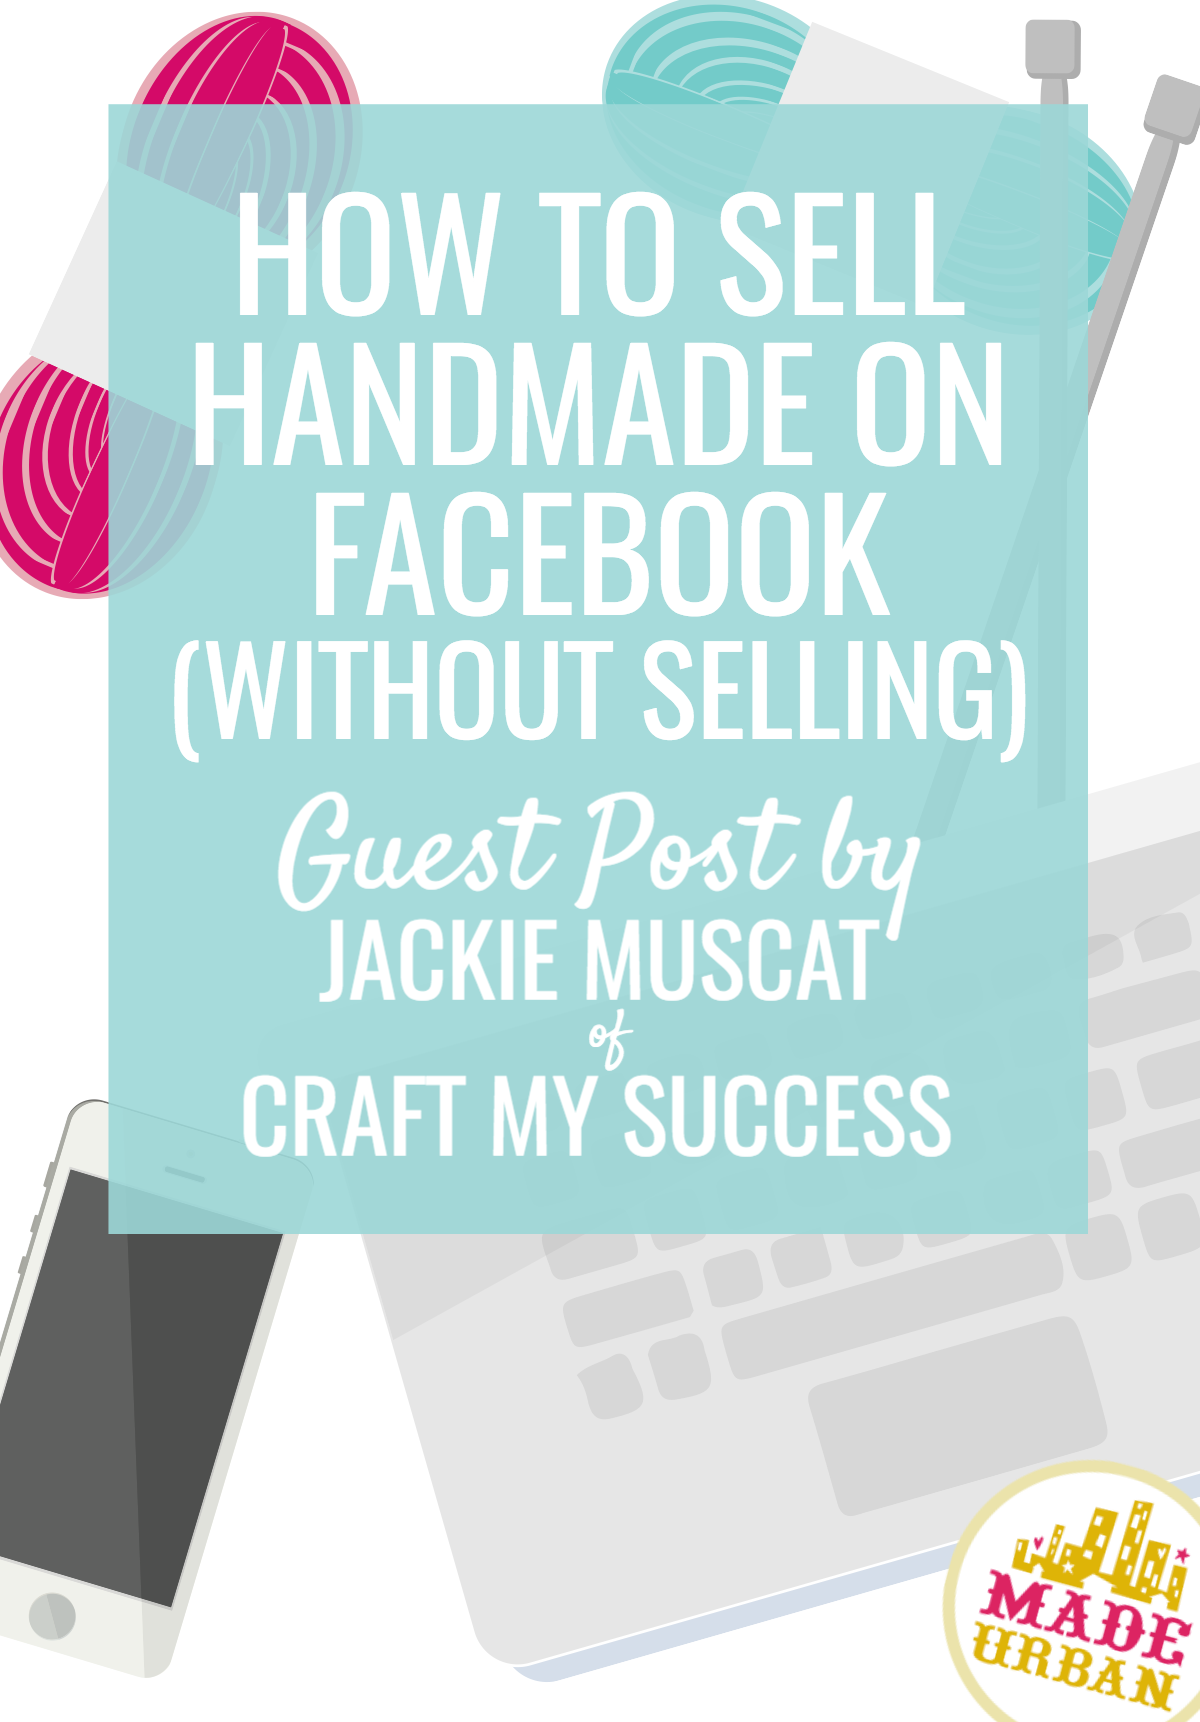 Facebook has over 2 billion users but as a Facebook coach for makers and artists, I know that it's a struggle to get your posts seen. Here are 4 types of posts that will get your handmade products seen and sold without actually selling